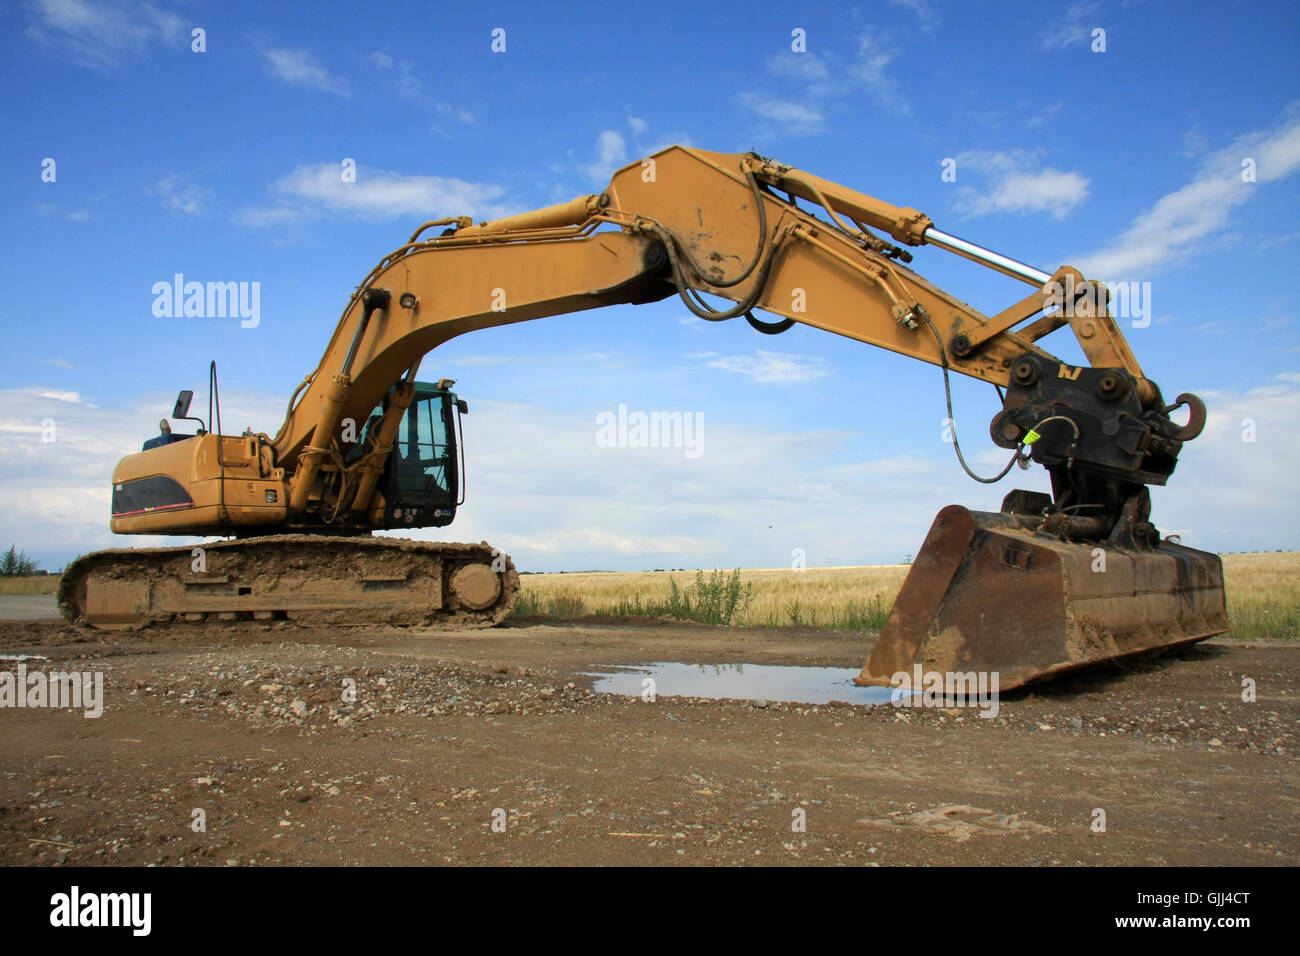 excavators ii - Stock Image